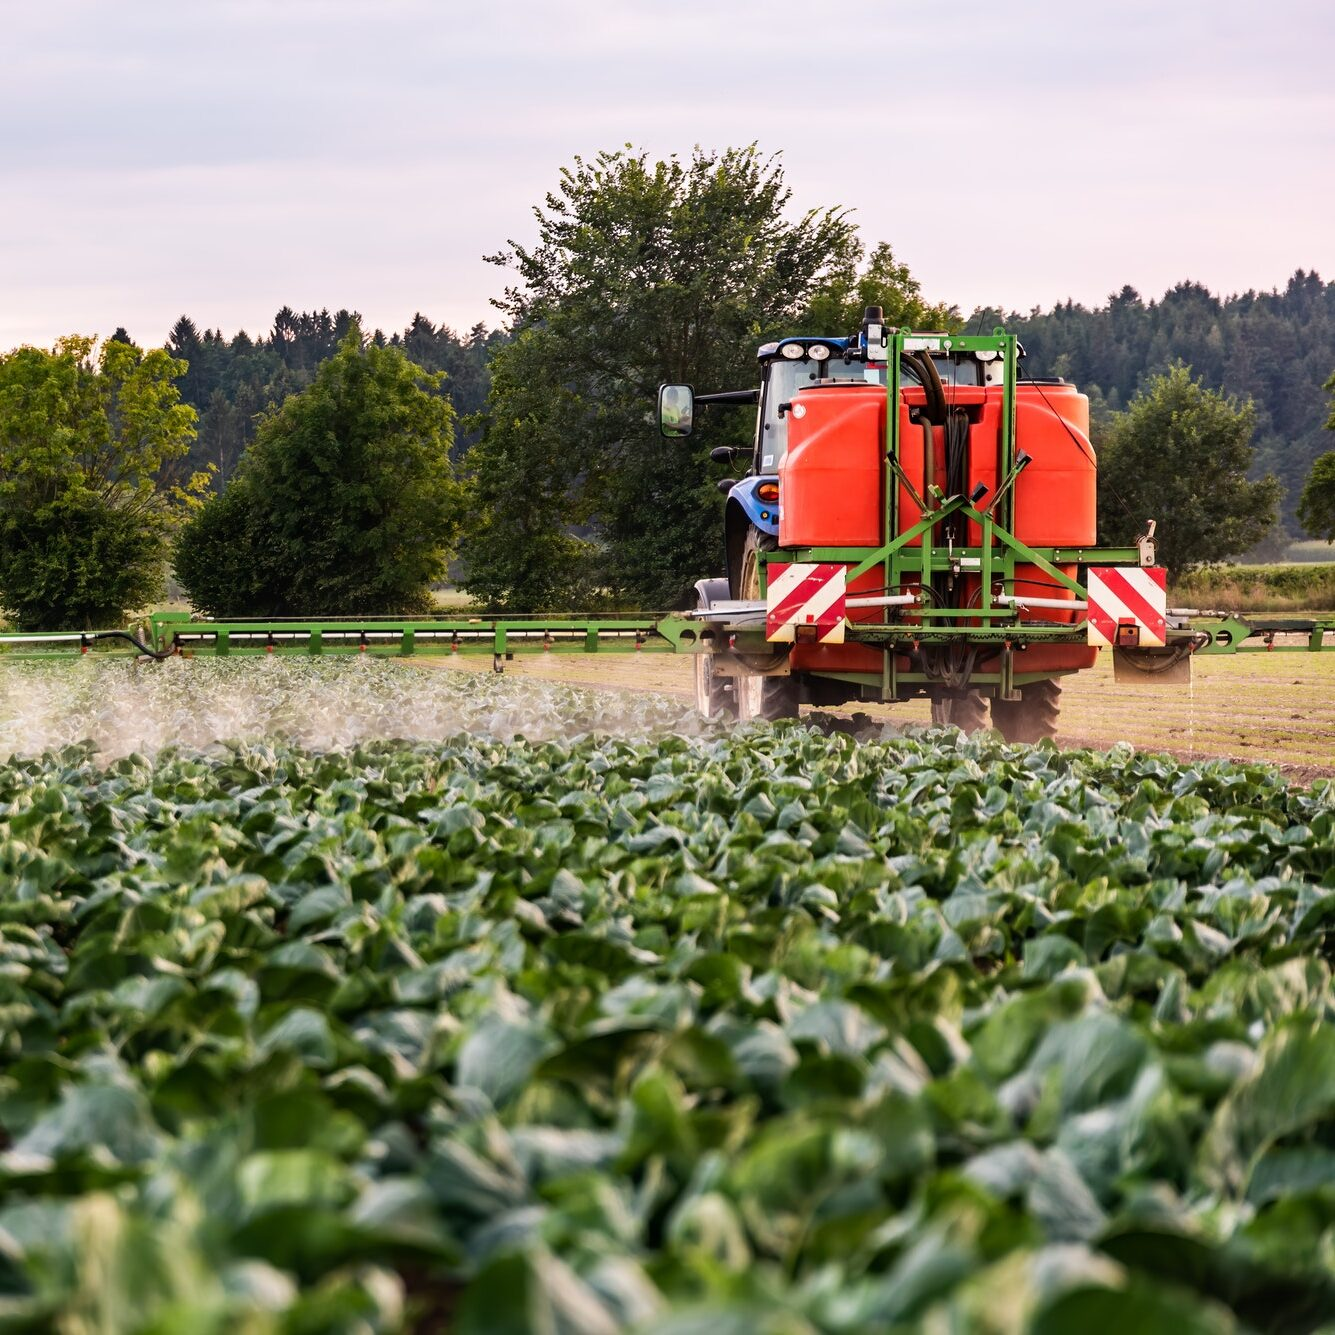 Tractor spraying pesticides on cabbage field